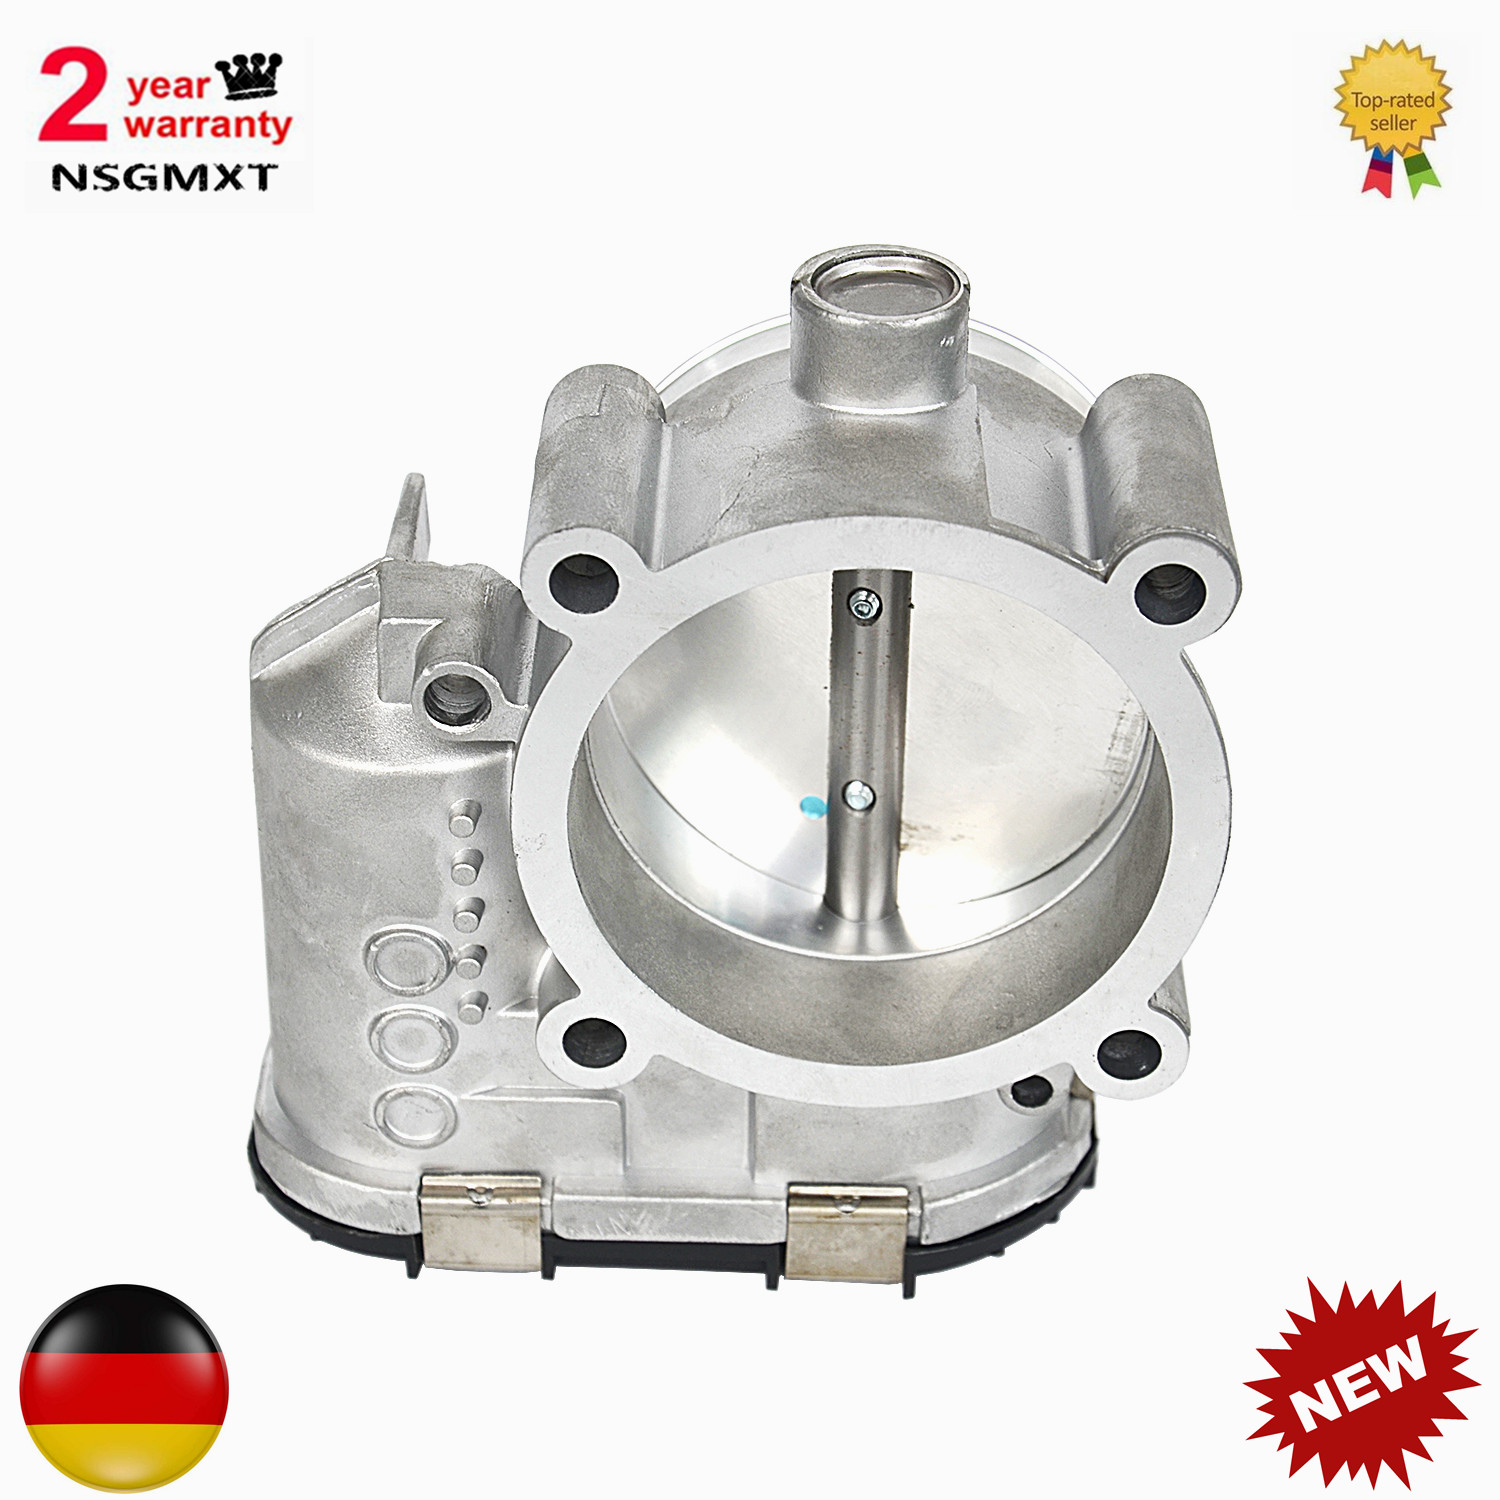 AP01 Electronic Throttle Body For Peugeot  Audi bus Bosch TBI DV E5 68MM  Electronic High Quality  0 280 750 152 0280750152|body|body throttle|  - title=